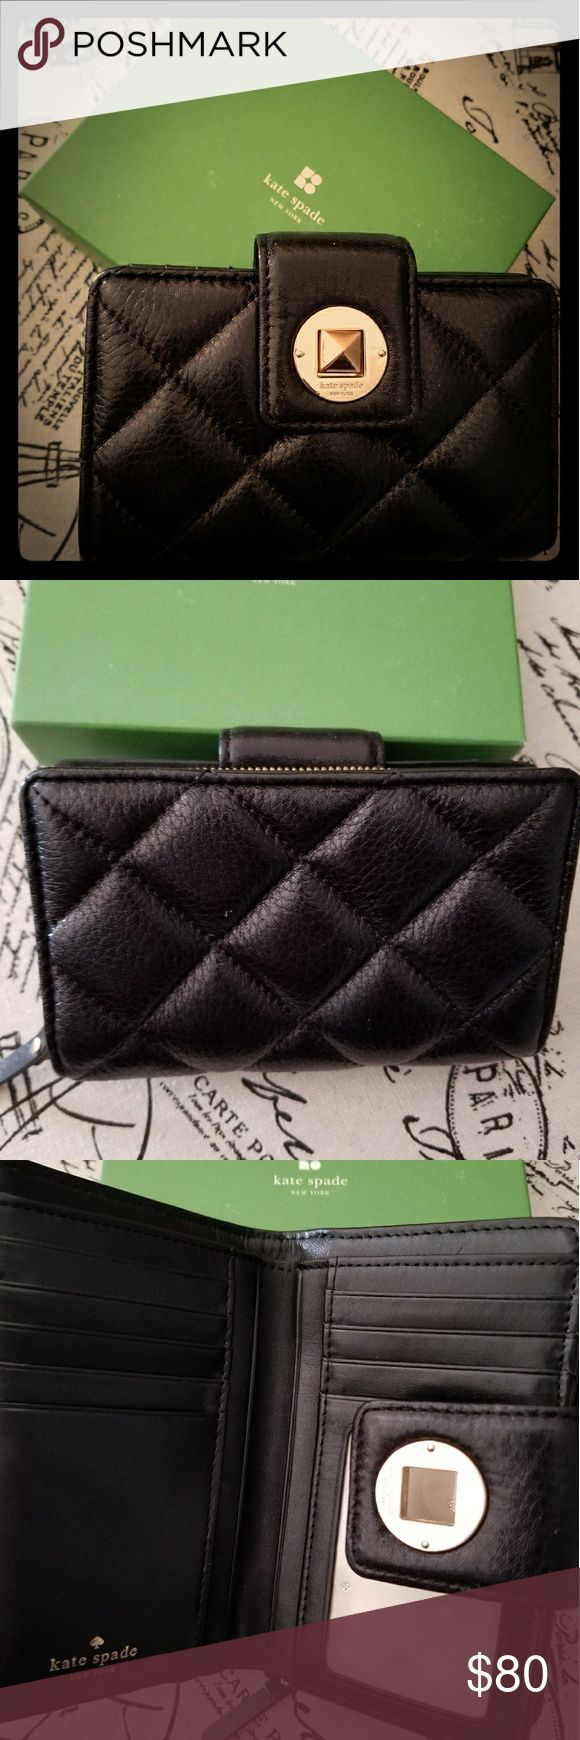 """Kate Spade """"Gold Coast Jules"""" Wallet in Black Beautiful like new Kate Spade leather wallet. Black with an iridescent sheen. Turn lock closure, zippered coin purse on back. ID window, multiple card slots and space for cash. Box included. Bundle with my Kate Spade Gold Coast Lilou tote listing! kate spade Bags Wallets"""